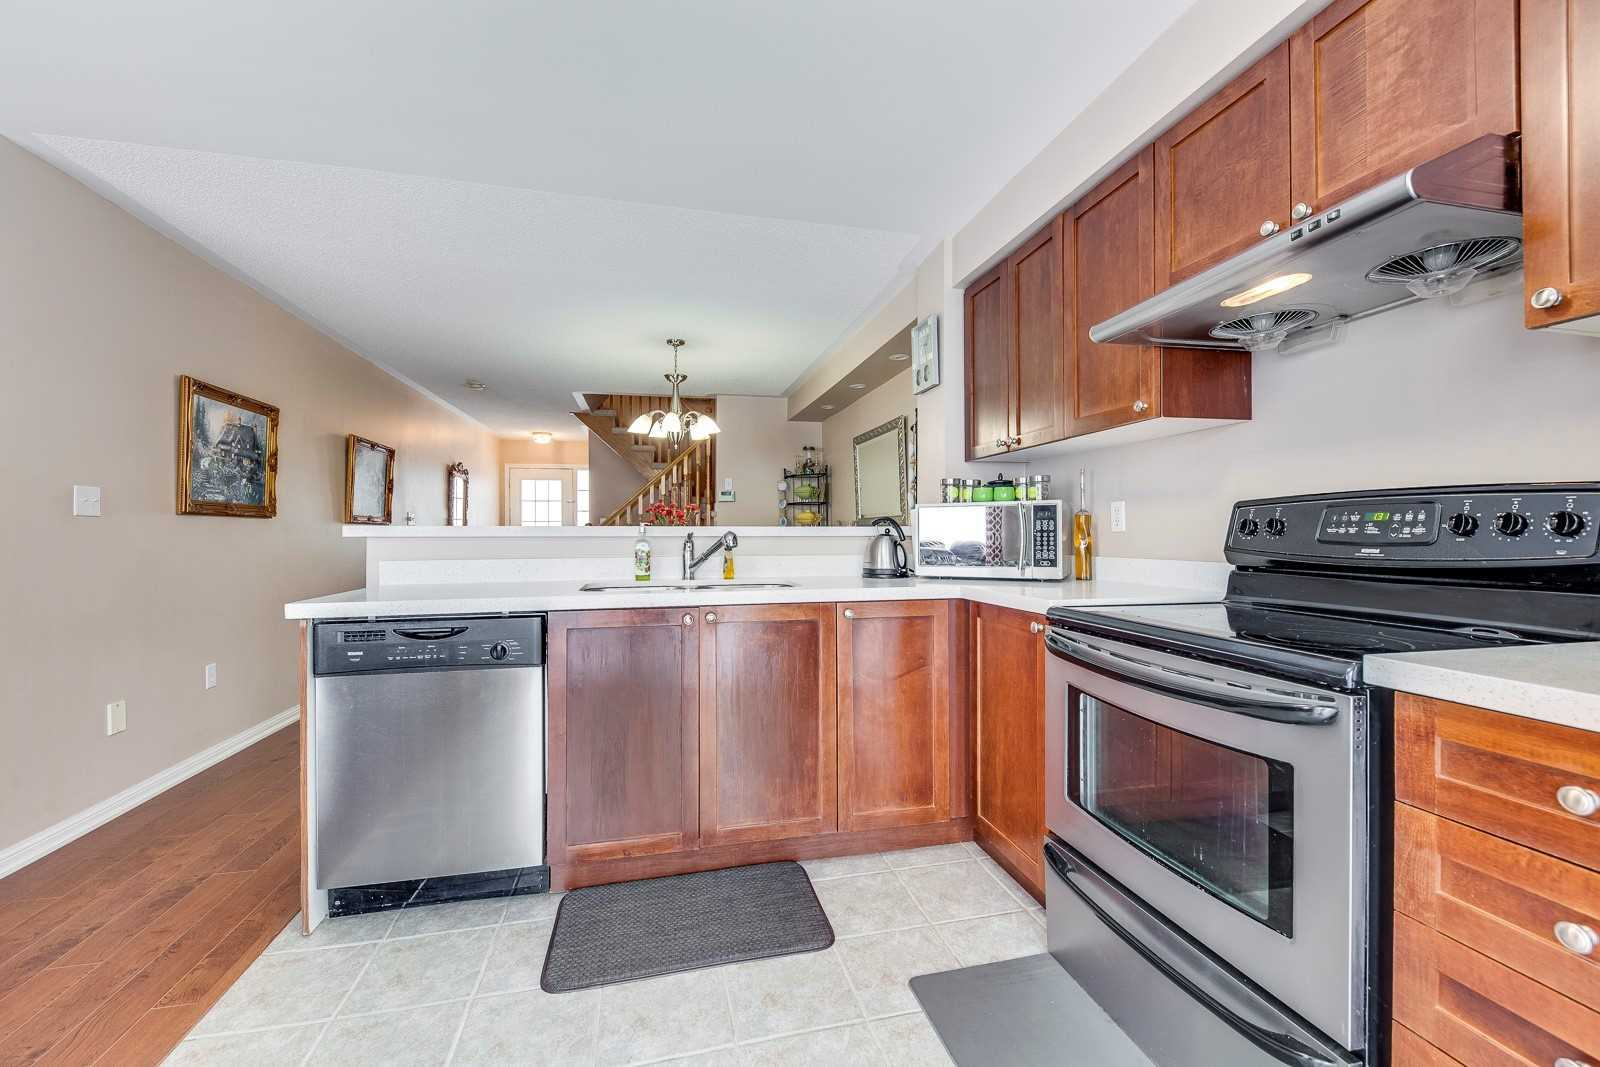 Image 18 of 20 showing inside of 3 Bedroom Att/Row/Twnhouse 2-Storey house for sale at 682 Edwards Ave, Milton L9T6B3